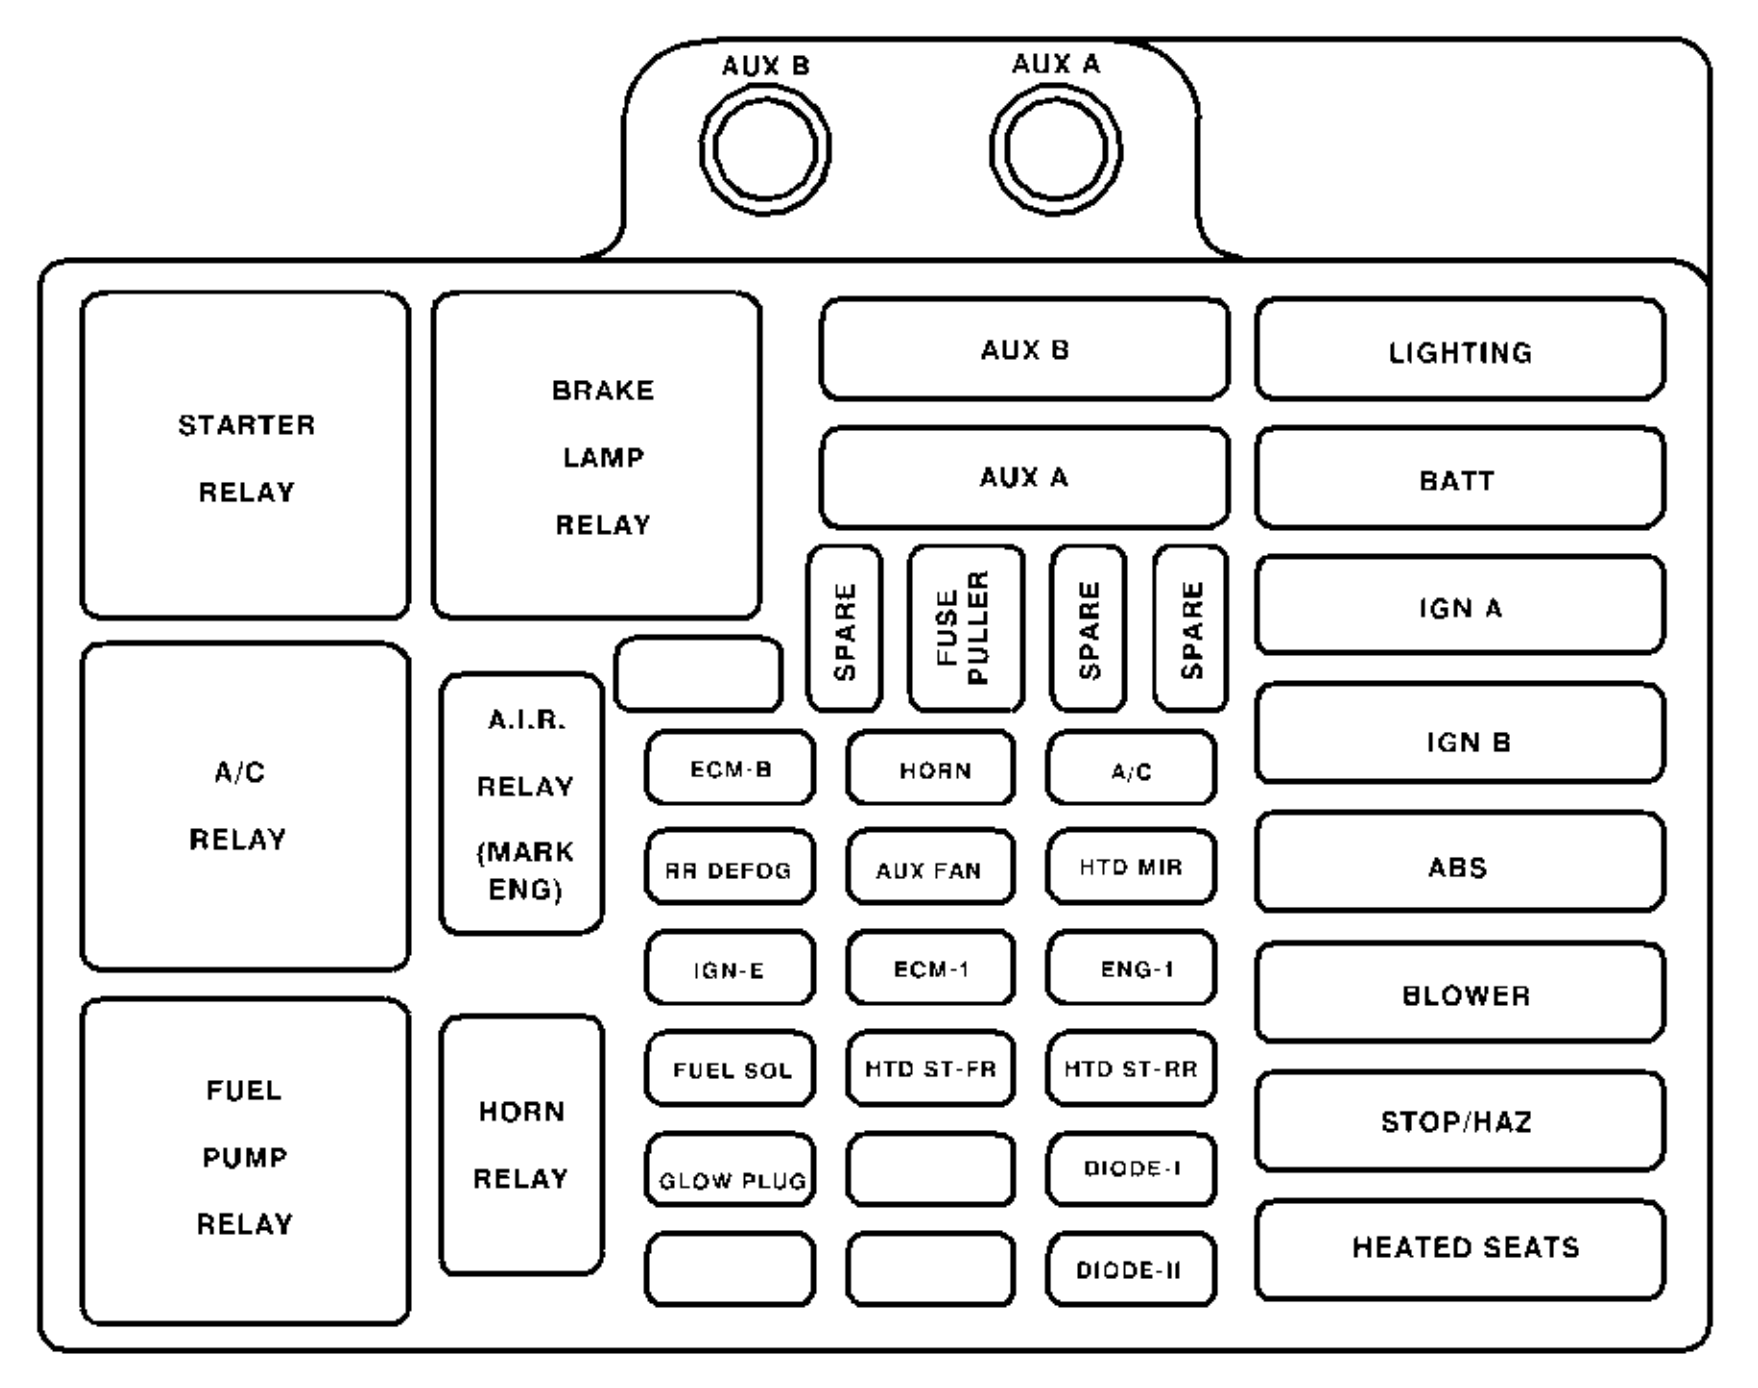 2014 Chevy Tahoe Fuse Box Diagram | Wiring Library